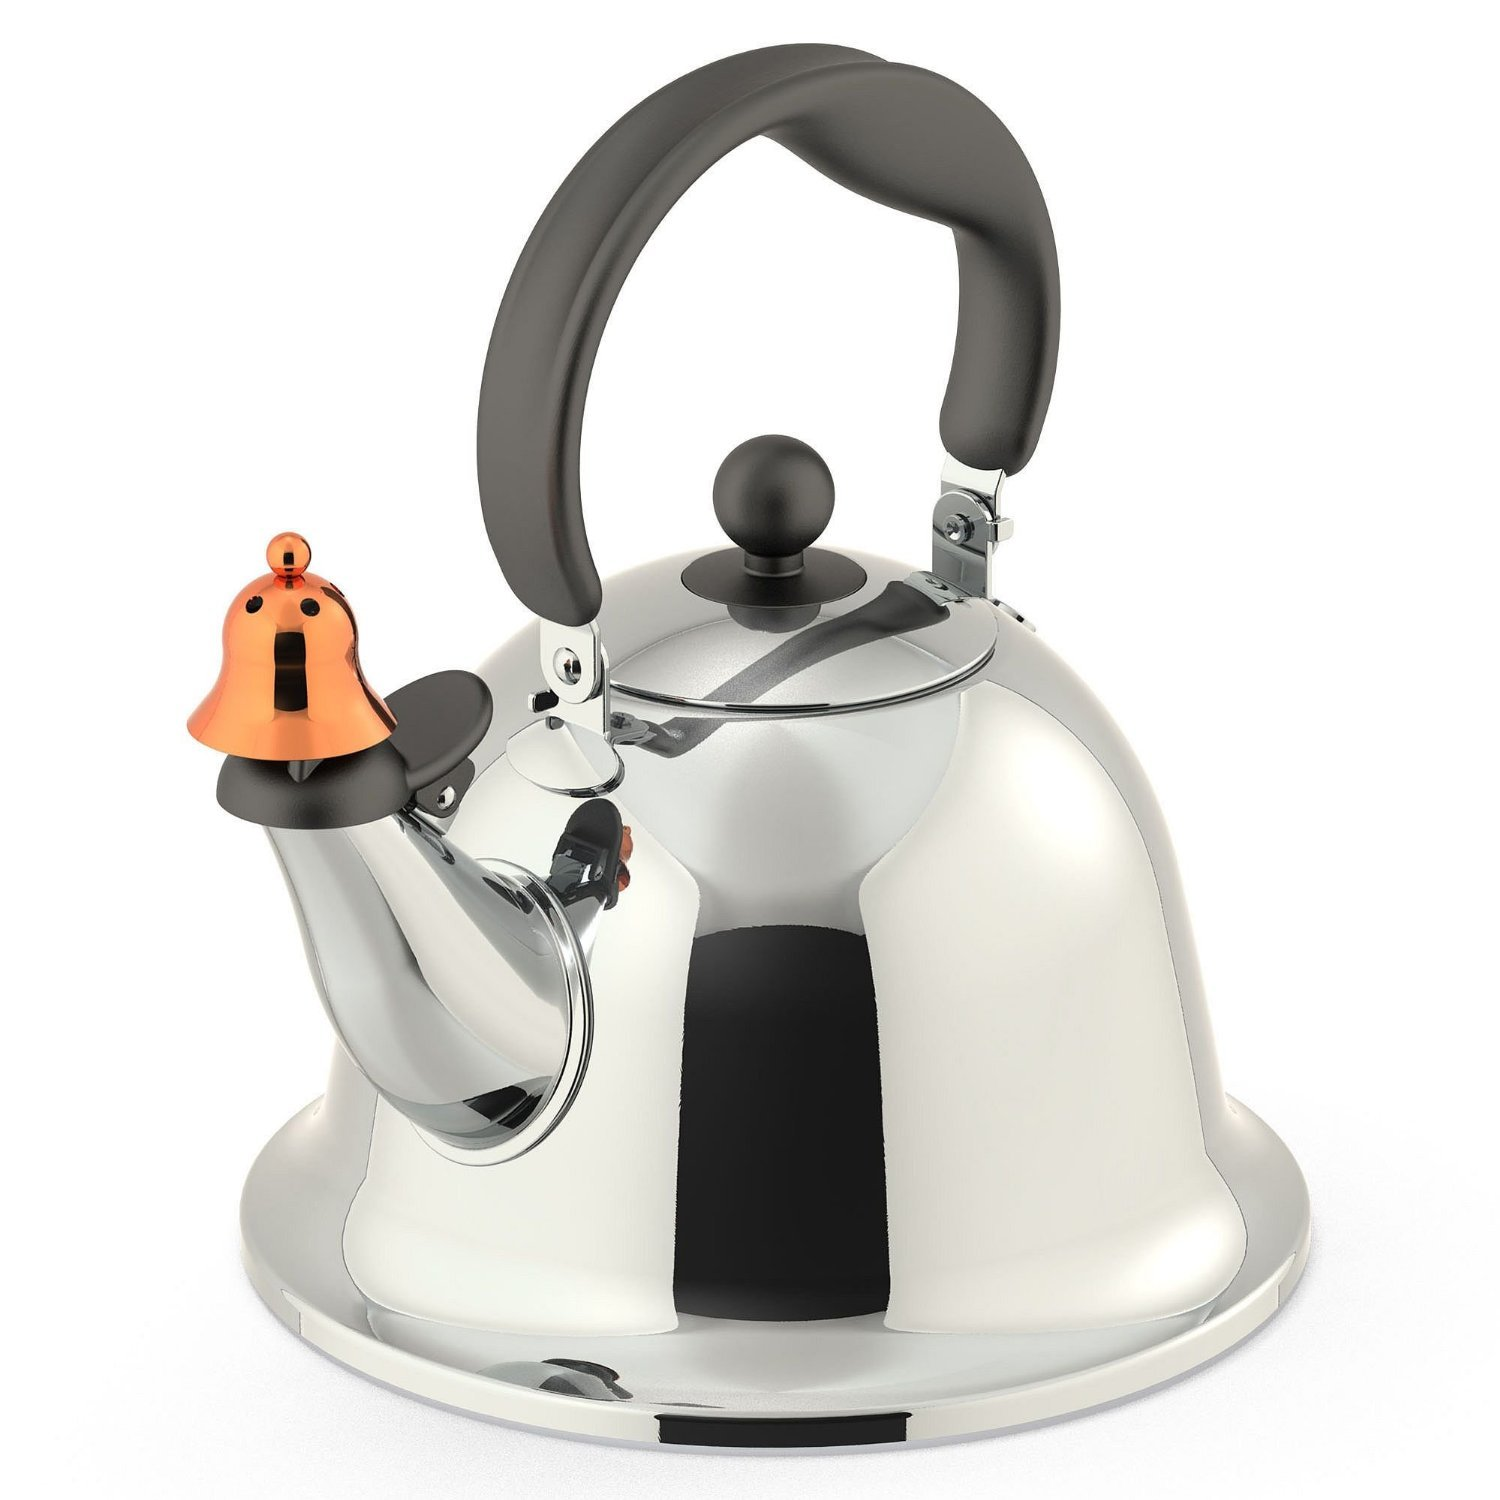 amazoncom michael graves design bells and whistles stainless  - amazoncom michael graves design bells and whistles stainless steel teakettle teakettles kitchen  dining